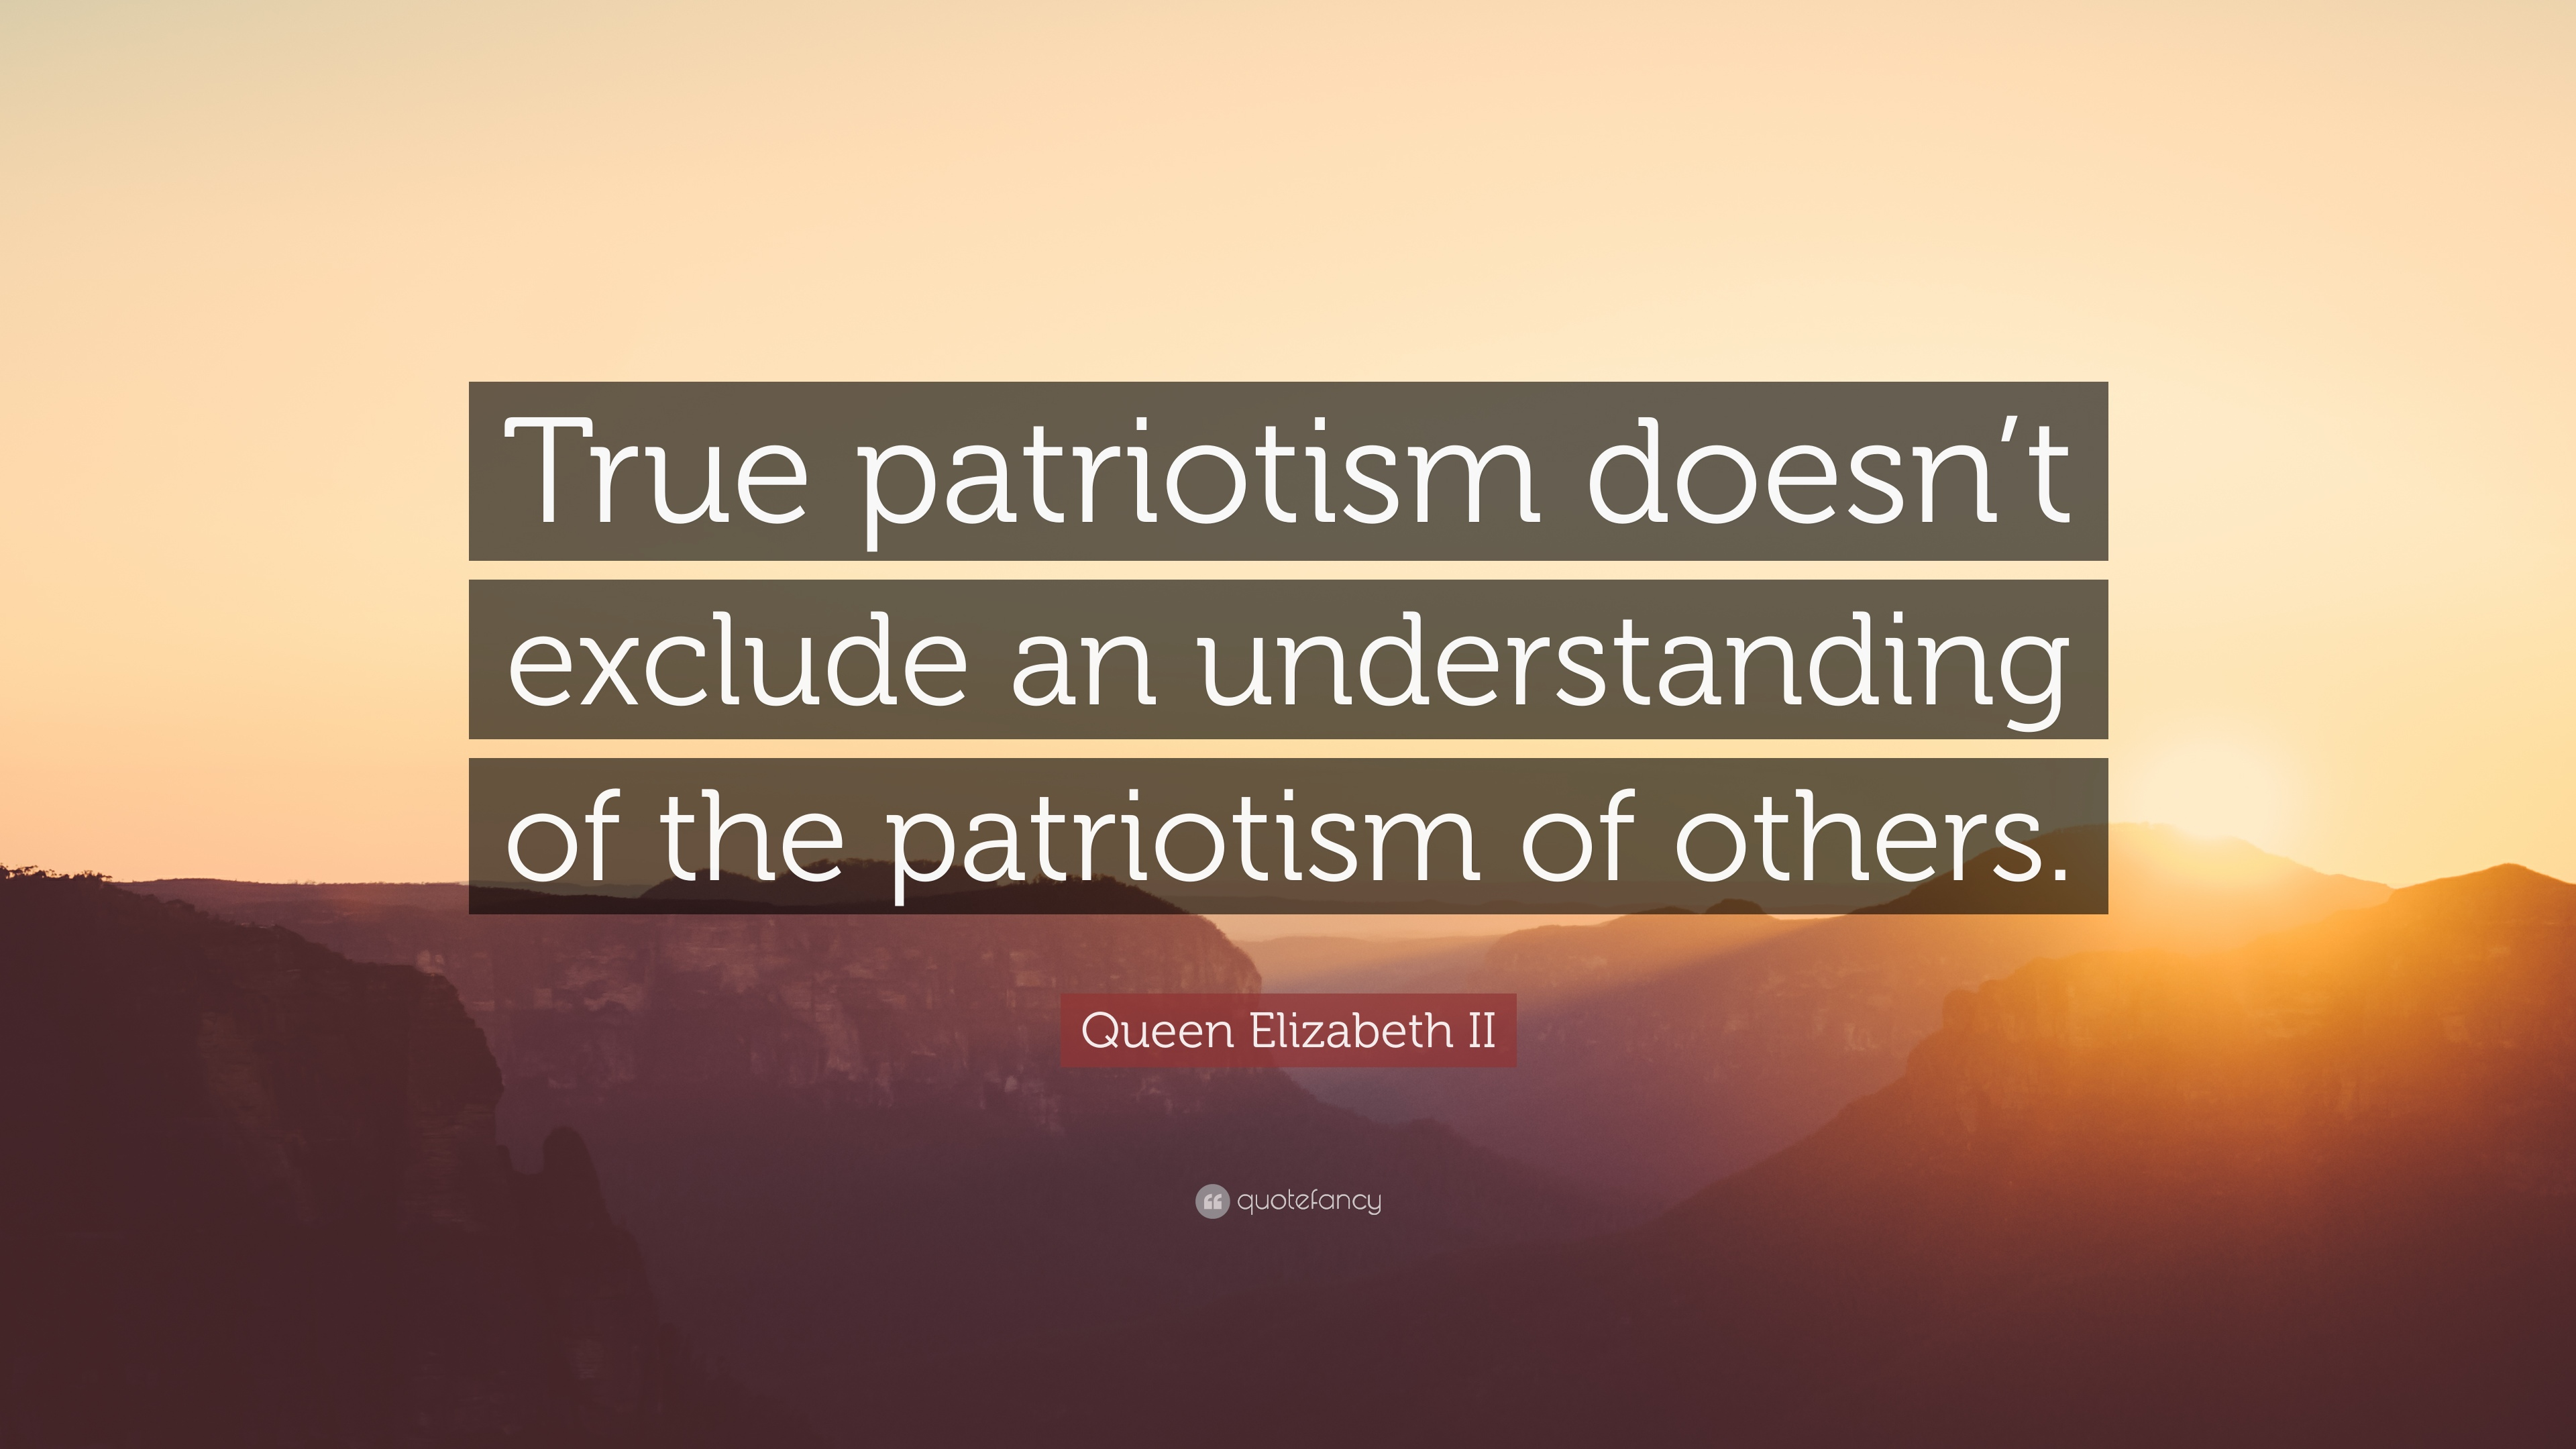 """the different versions of our true patriotism Rethinking our patriotism rest on radically different conceptions happiness"""" our revolution sought true patriotism now requires not."""